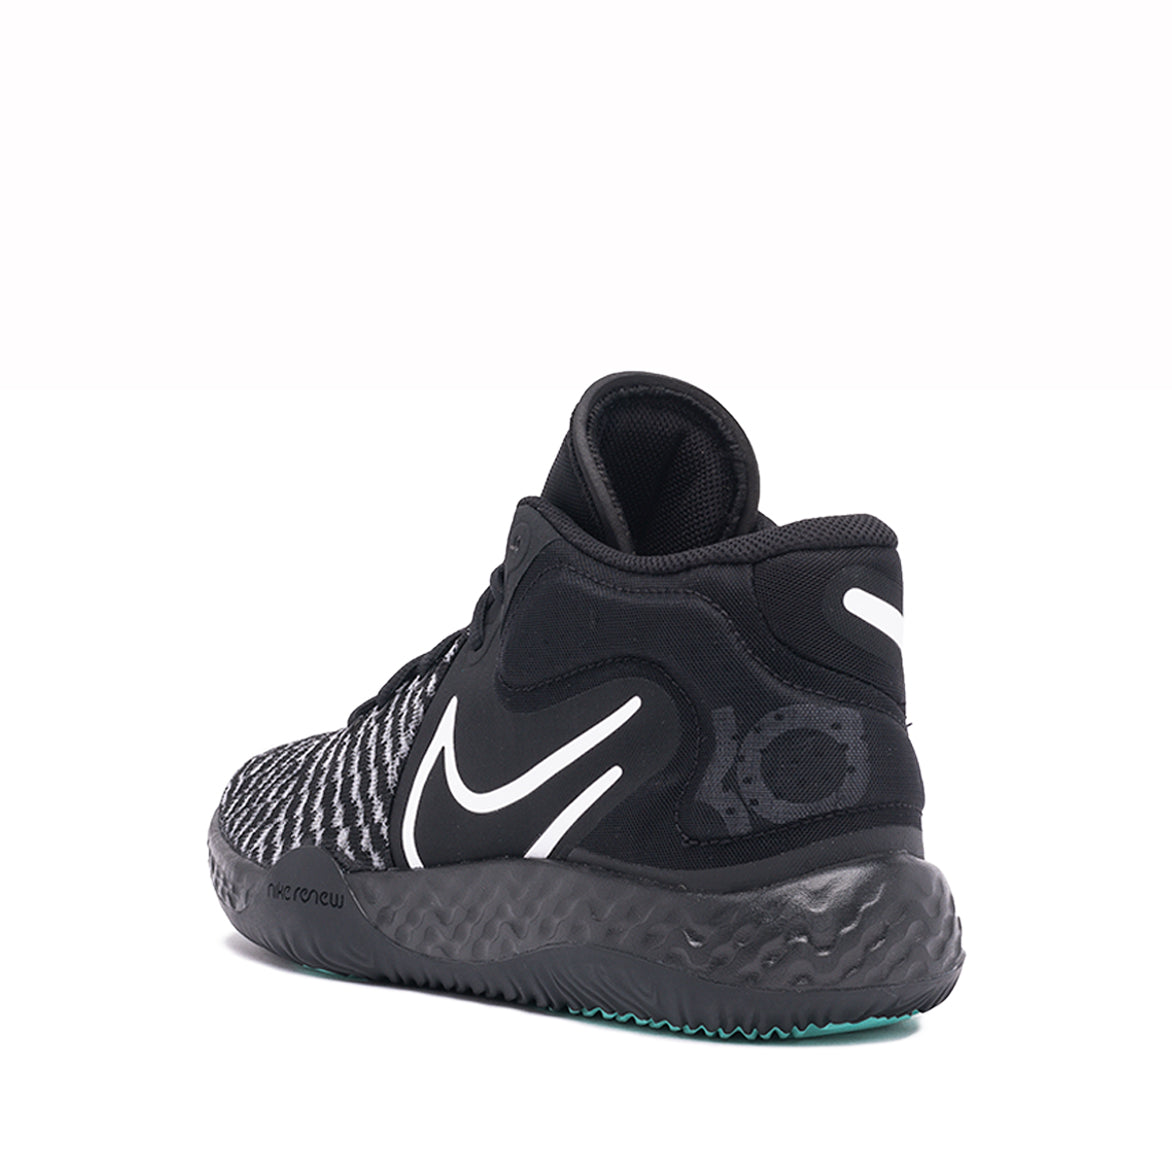 KD TREY 5 VIII - BLACK / WHITE